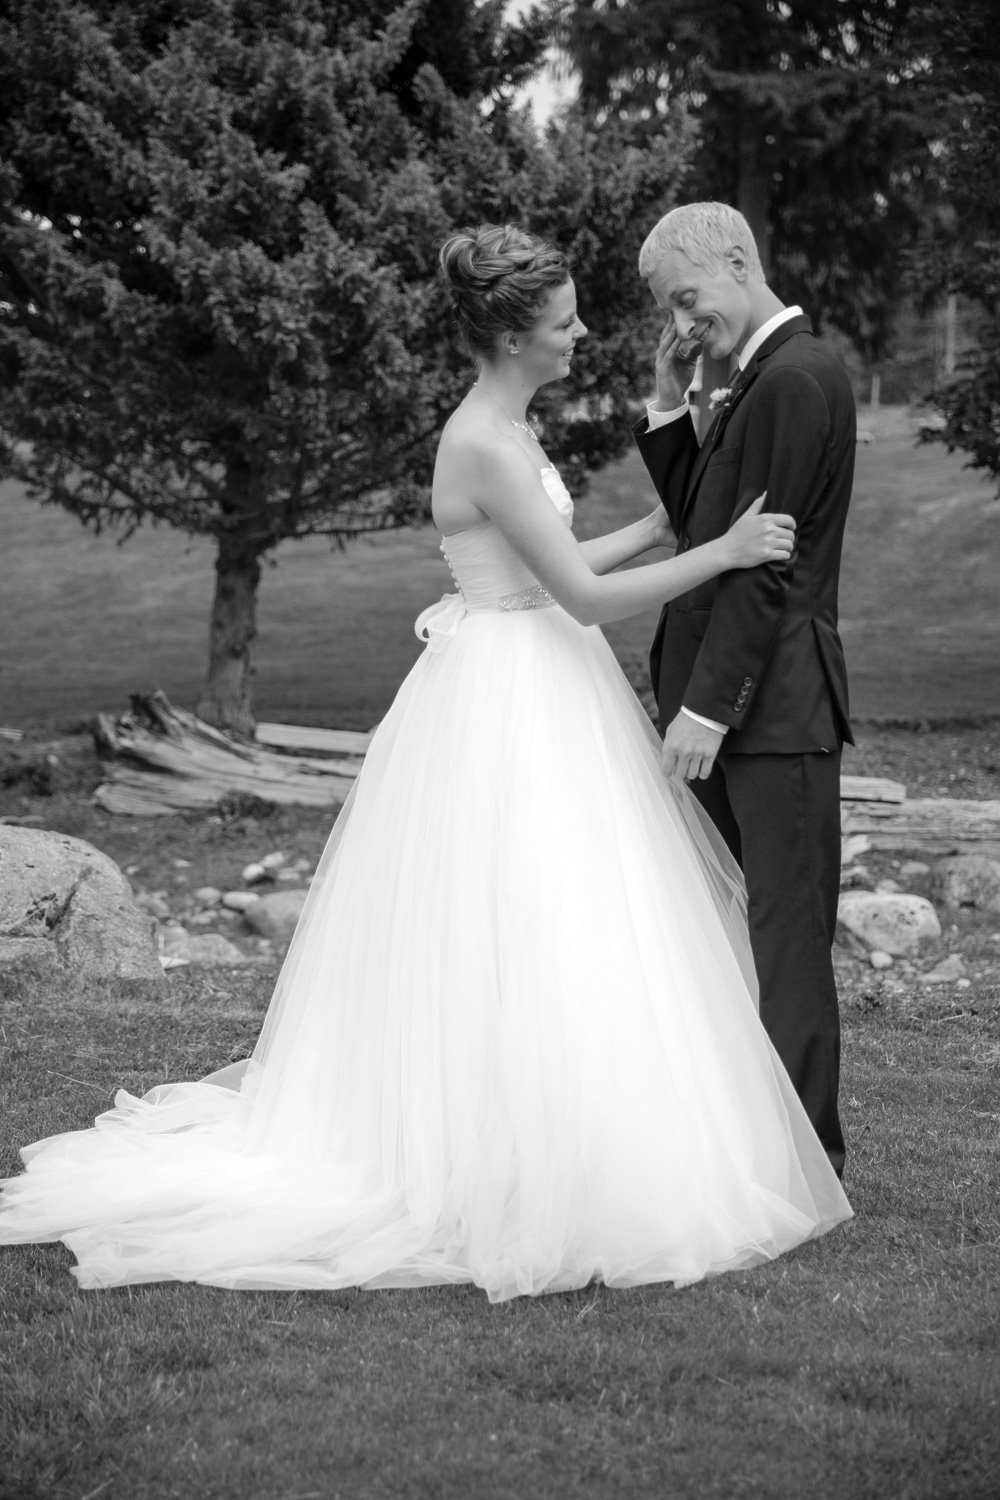 Wedding Photos McCormick Woods Golf Course Port Orchard Washington 08.jpg